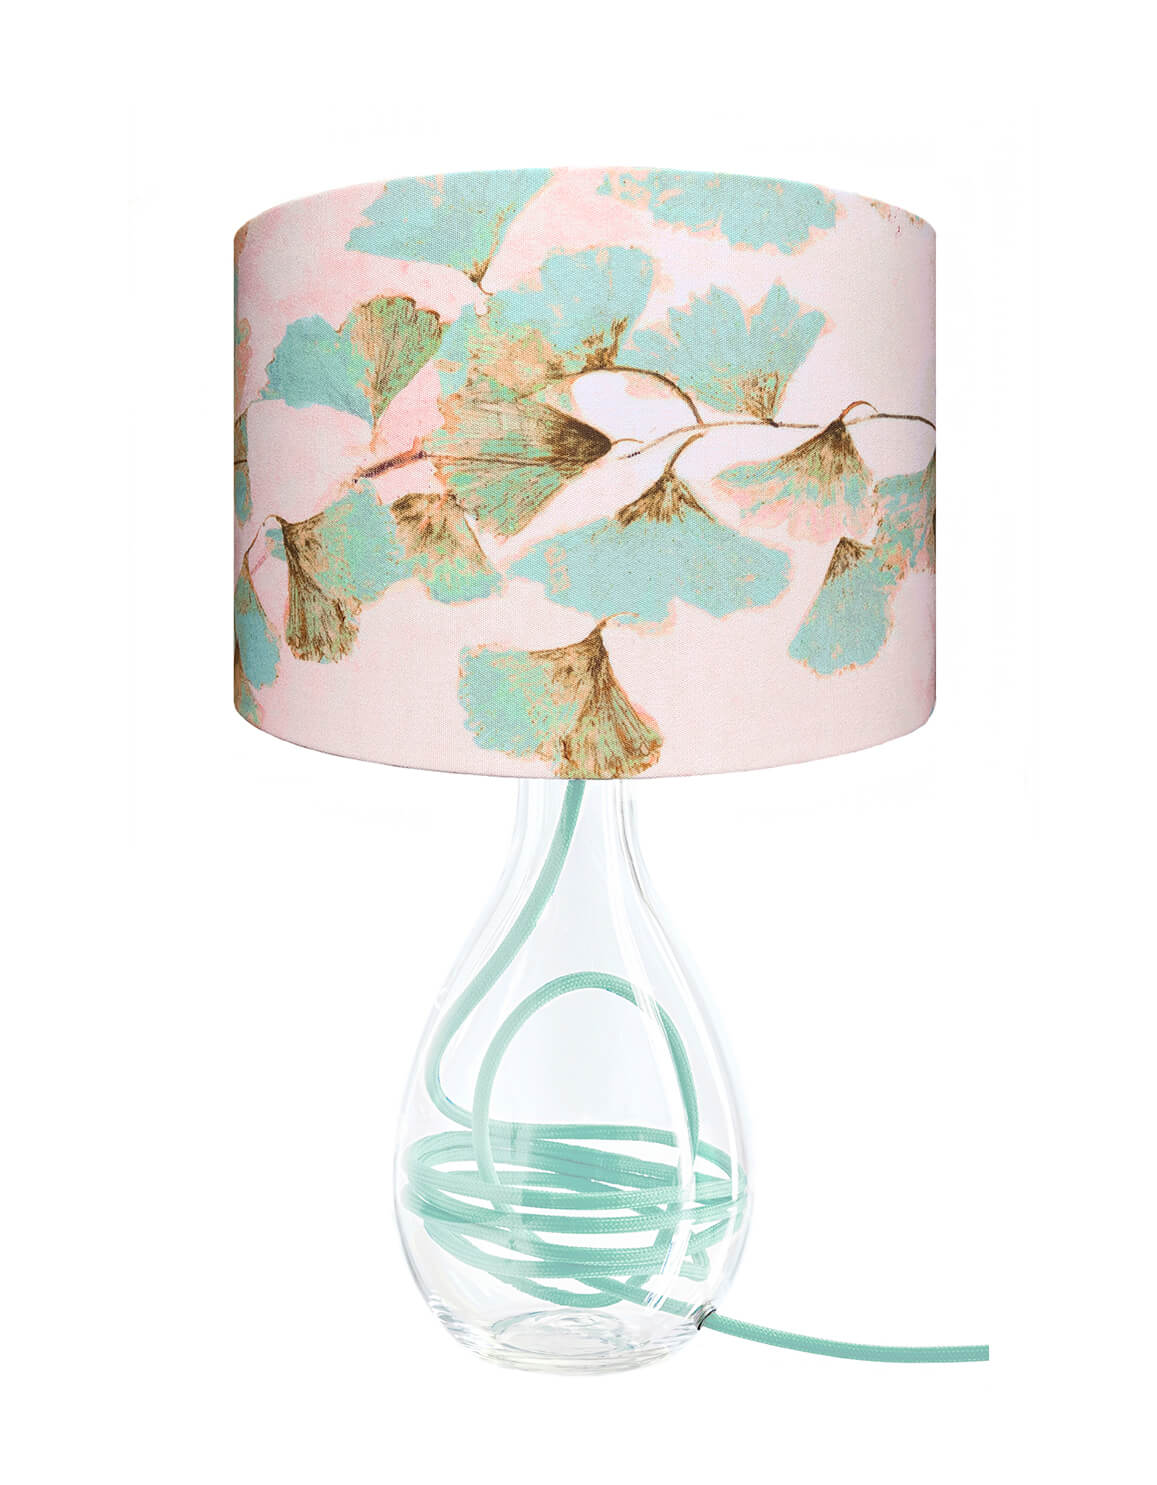 Ginkgo in Jade glass lamp on gold flex, designed by Anna Jacobs